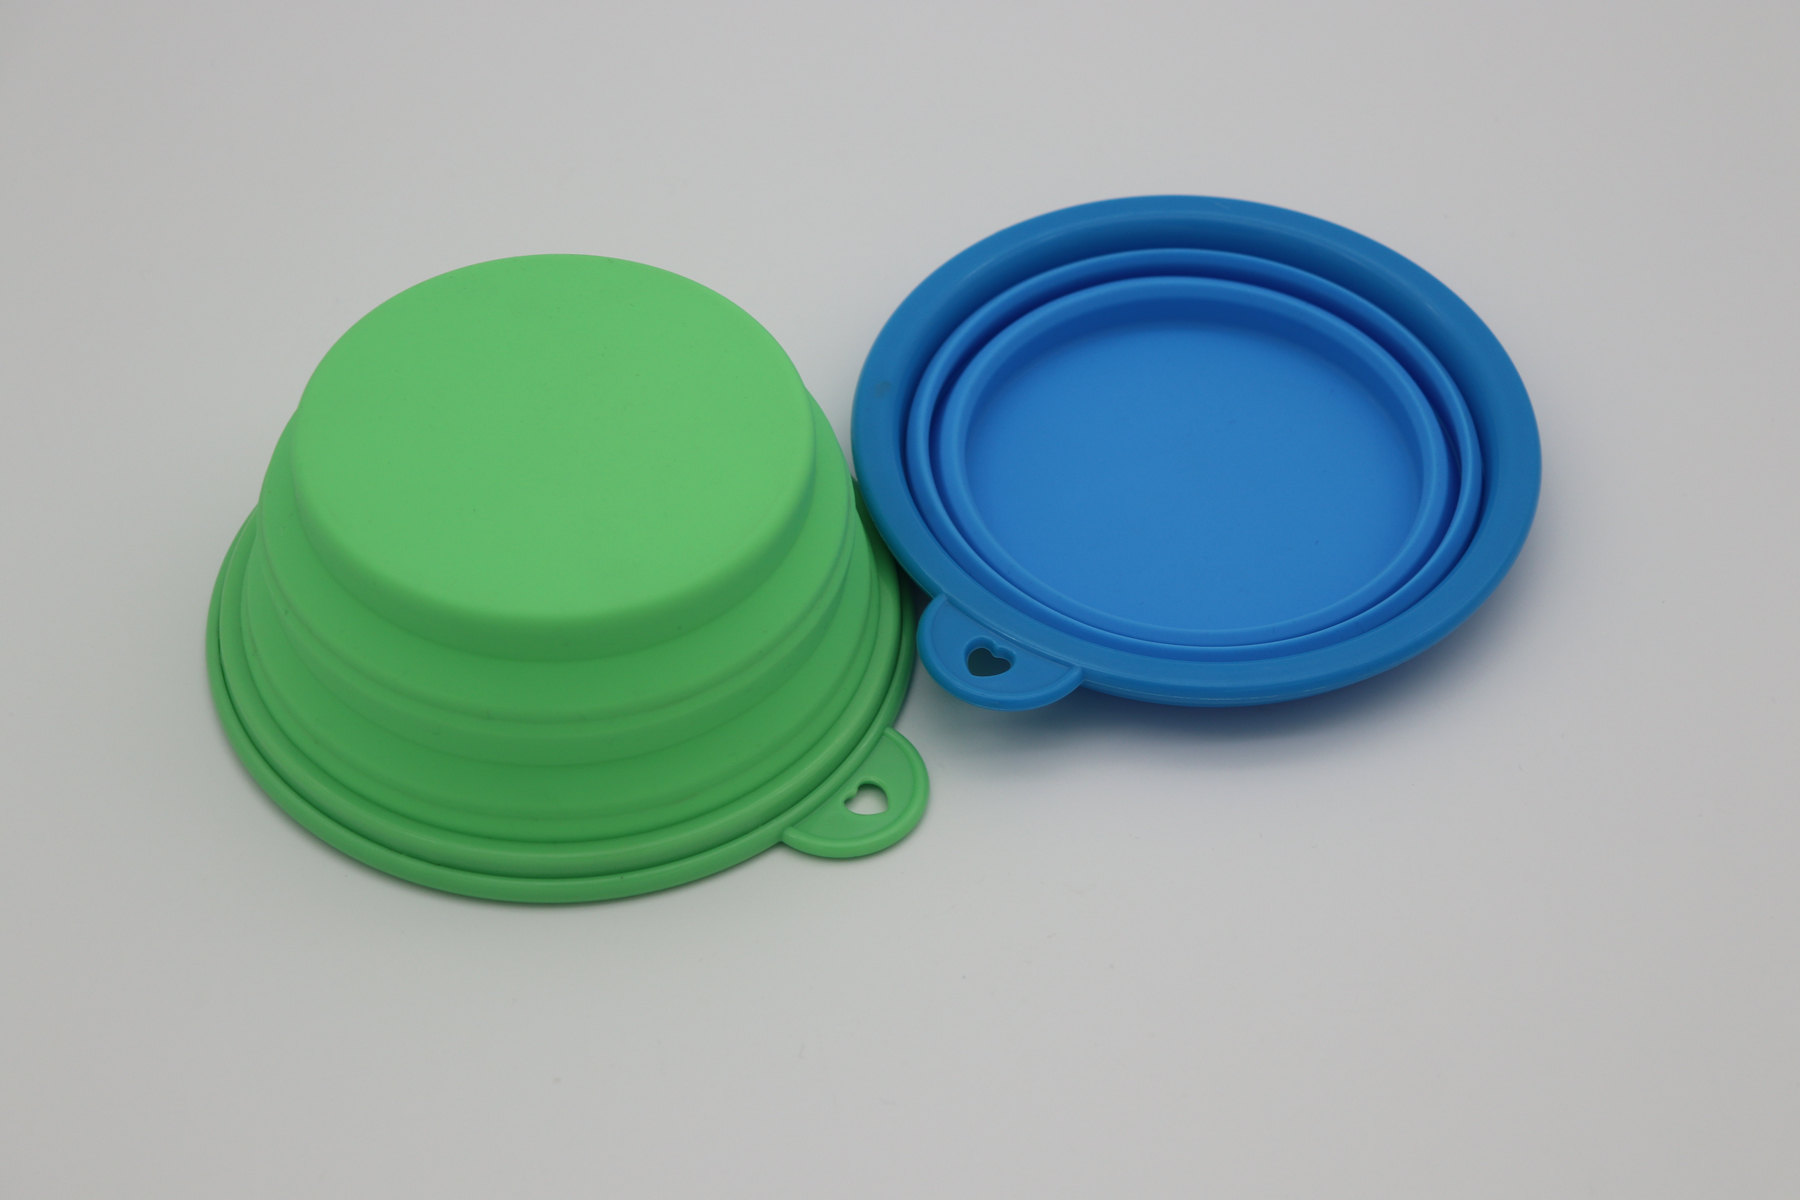 http://www.refinehksilicone.cn/data/images/product/20180417100357_900.jpg